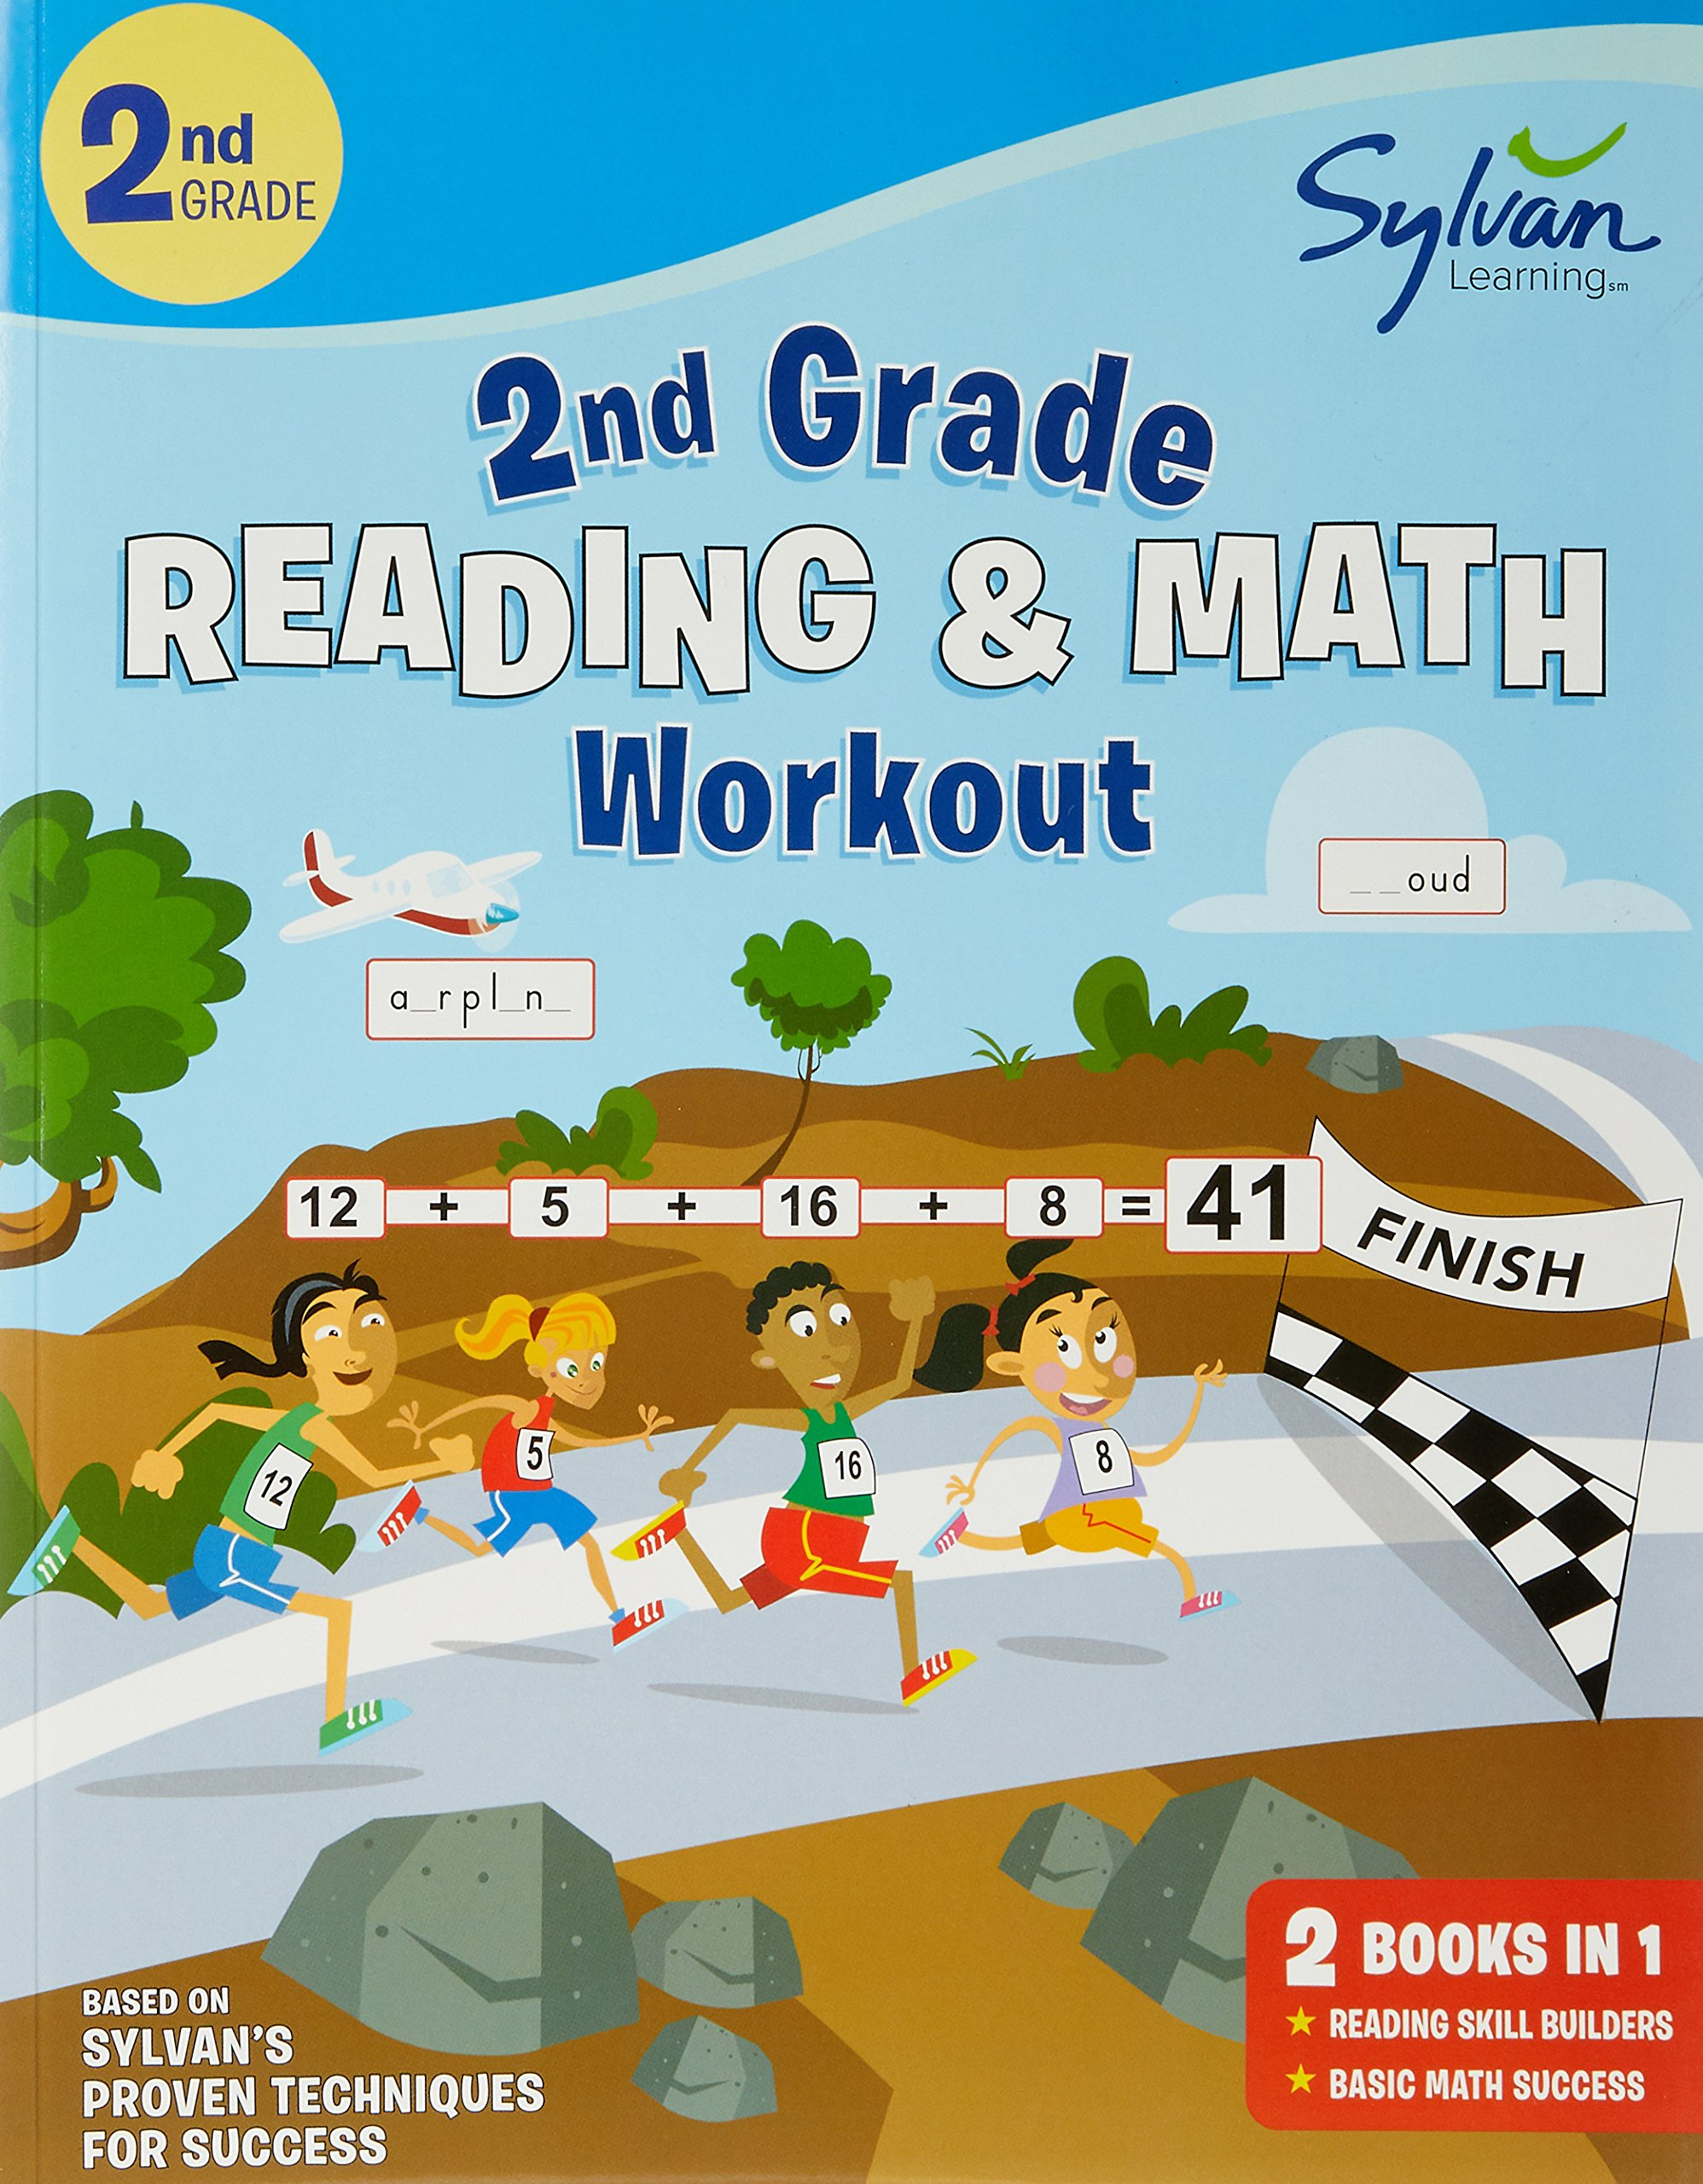 2nd Grade Reading & Math Workout: Activities, Exercises, and Tips to ...